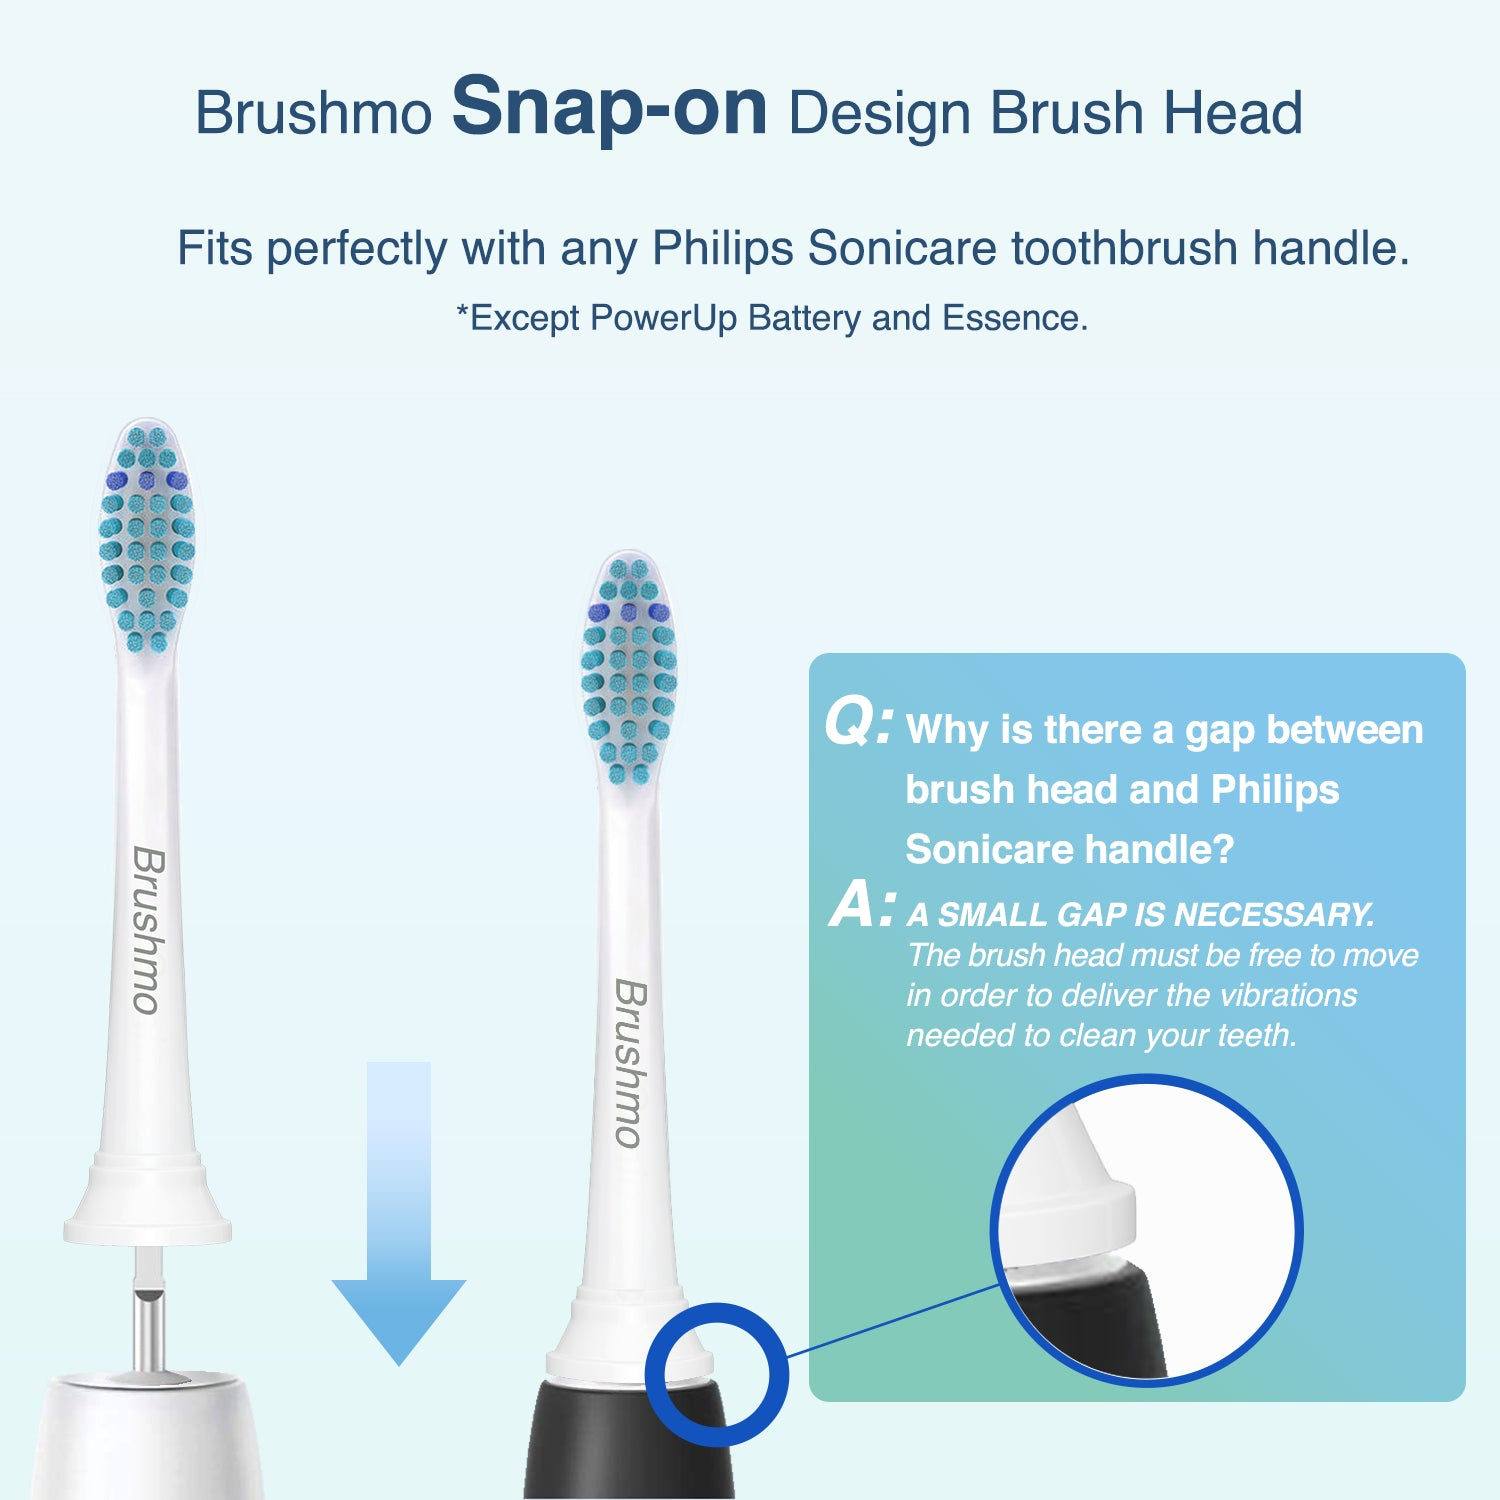 Brushmo Sensitive Replacement Toothbrush Heads Compatible with Sonicare HX6053, 8 Pack, fits Essence+, Plaque Control, Gum Health, DiamondClean, FlexCare, HealthyWhite and EasyClean